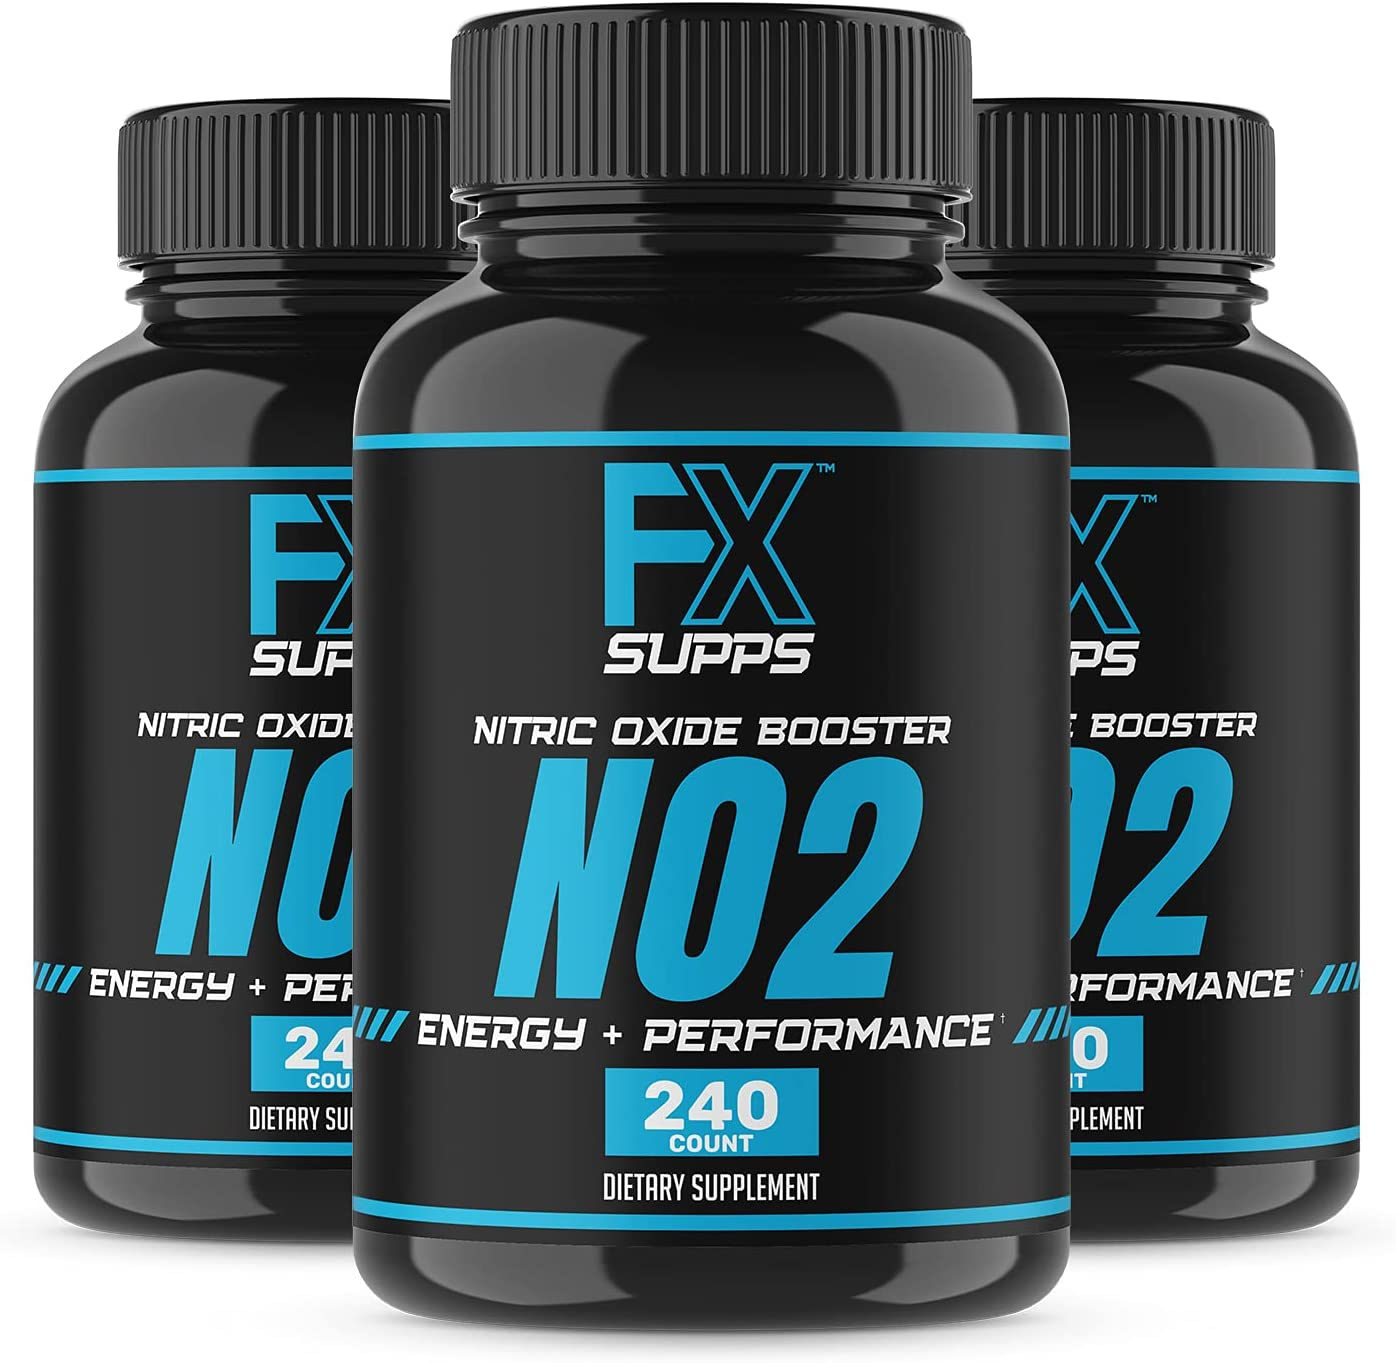 FX お気に入り Supplements Nitric Oxide Booster S - 別倉庫からの配送 Workout Pre